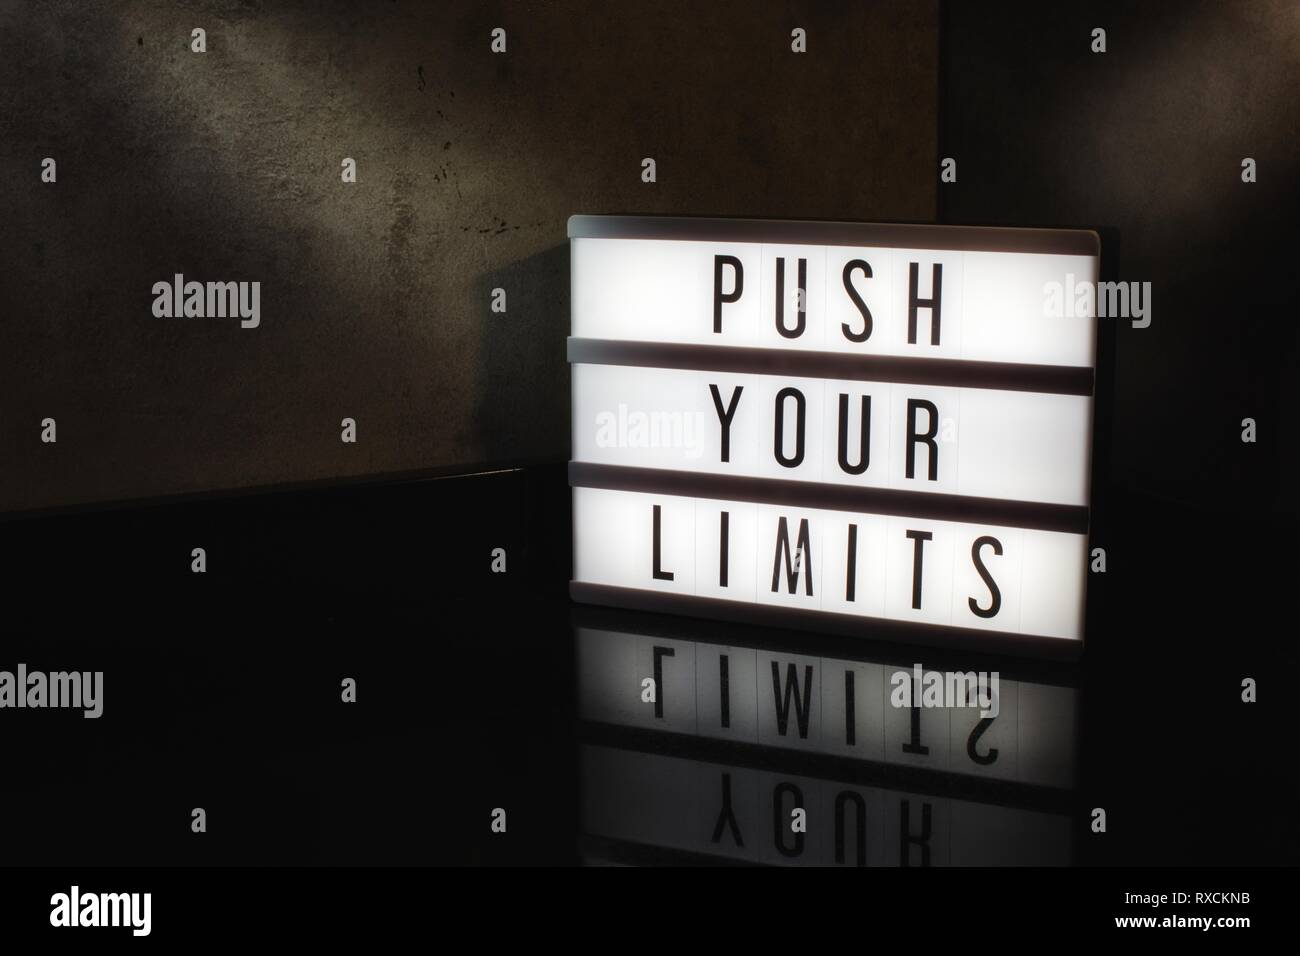 Push your limits motivational message on a light box in a cinematic moody background - Stock Image